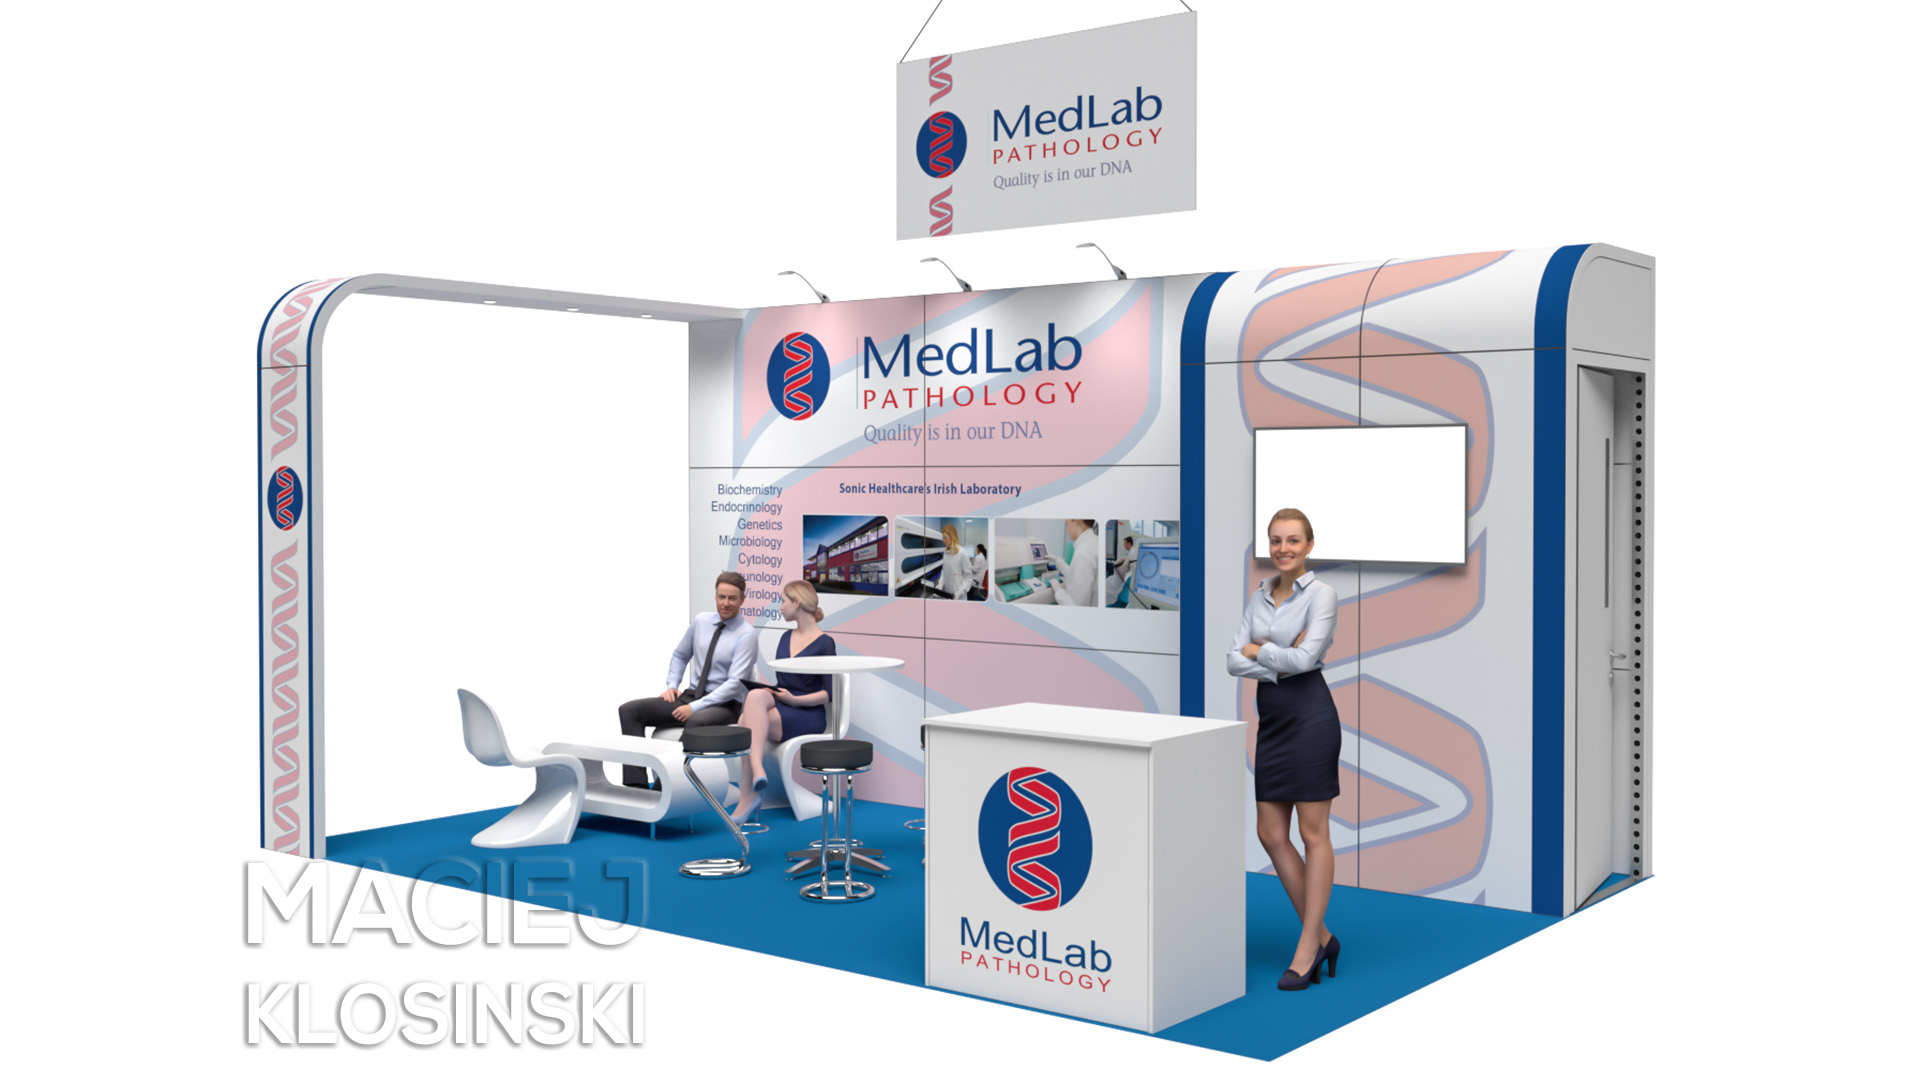 Medlab Pathology at Biomedica 2018